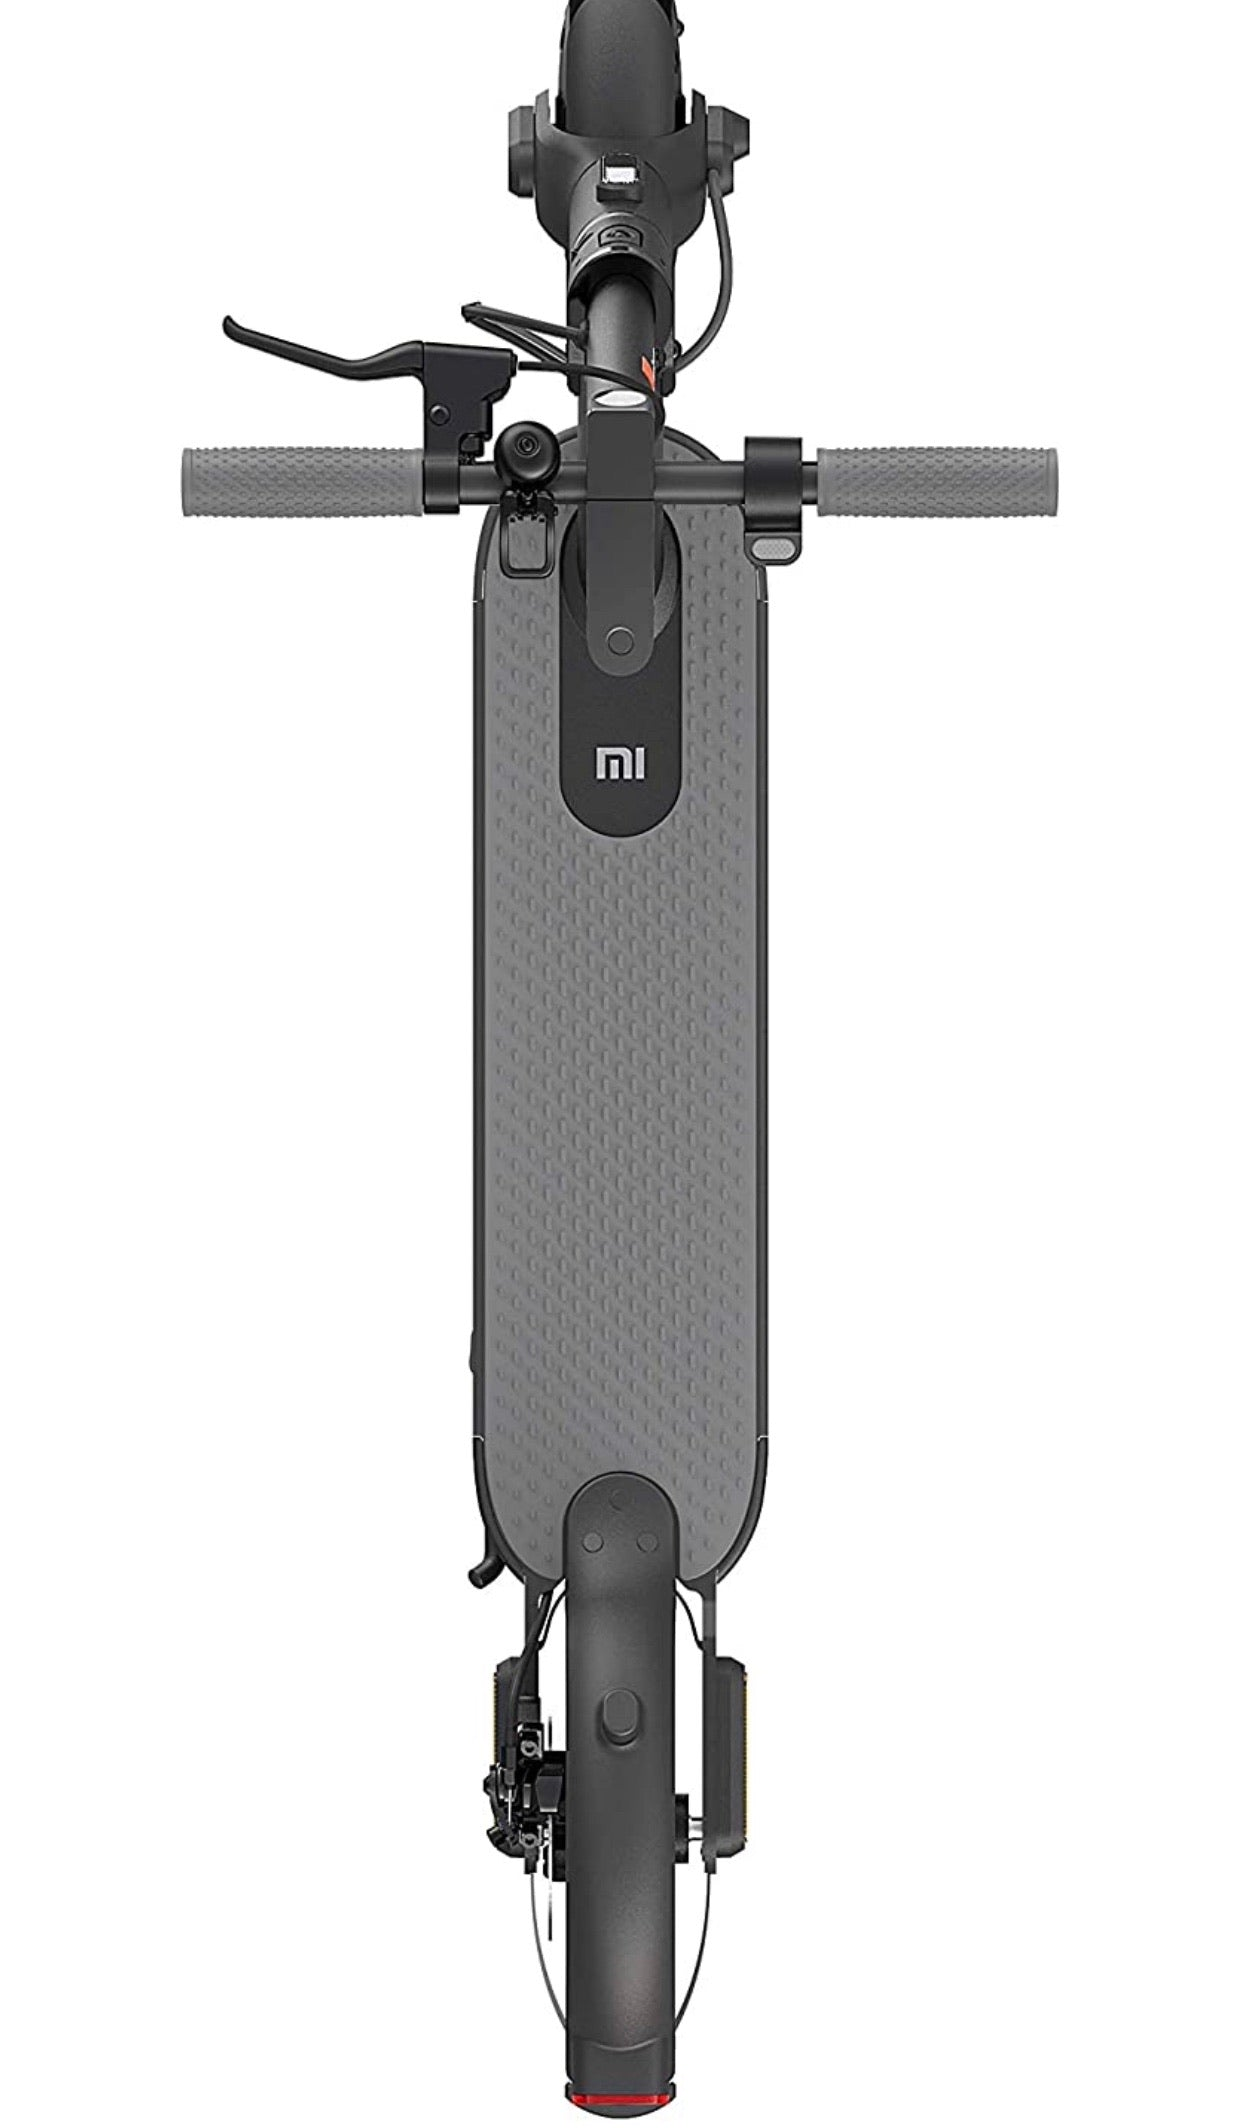 Xiaomi 1S Electric Scooter From Above